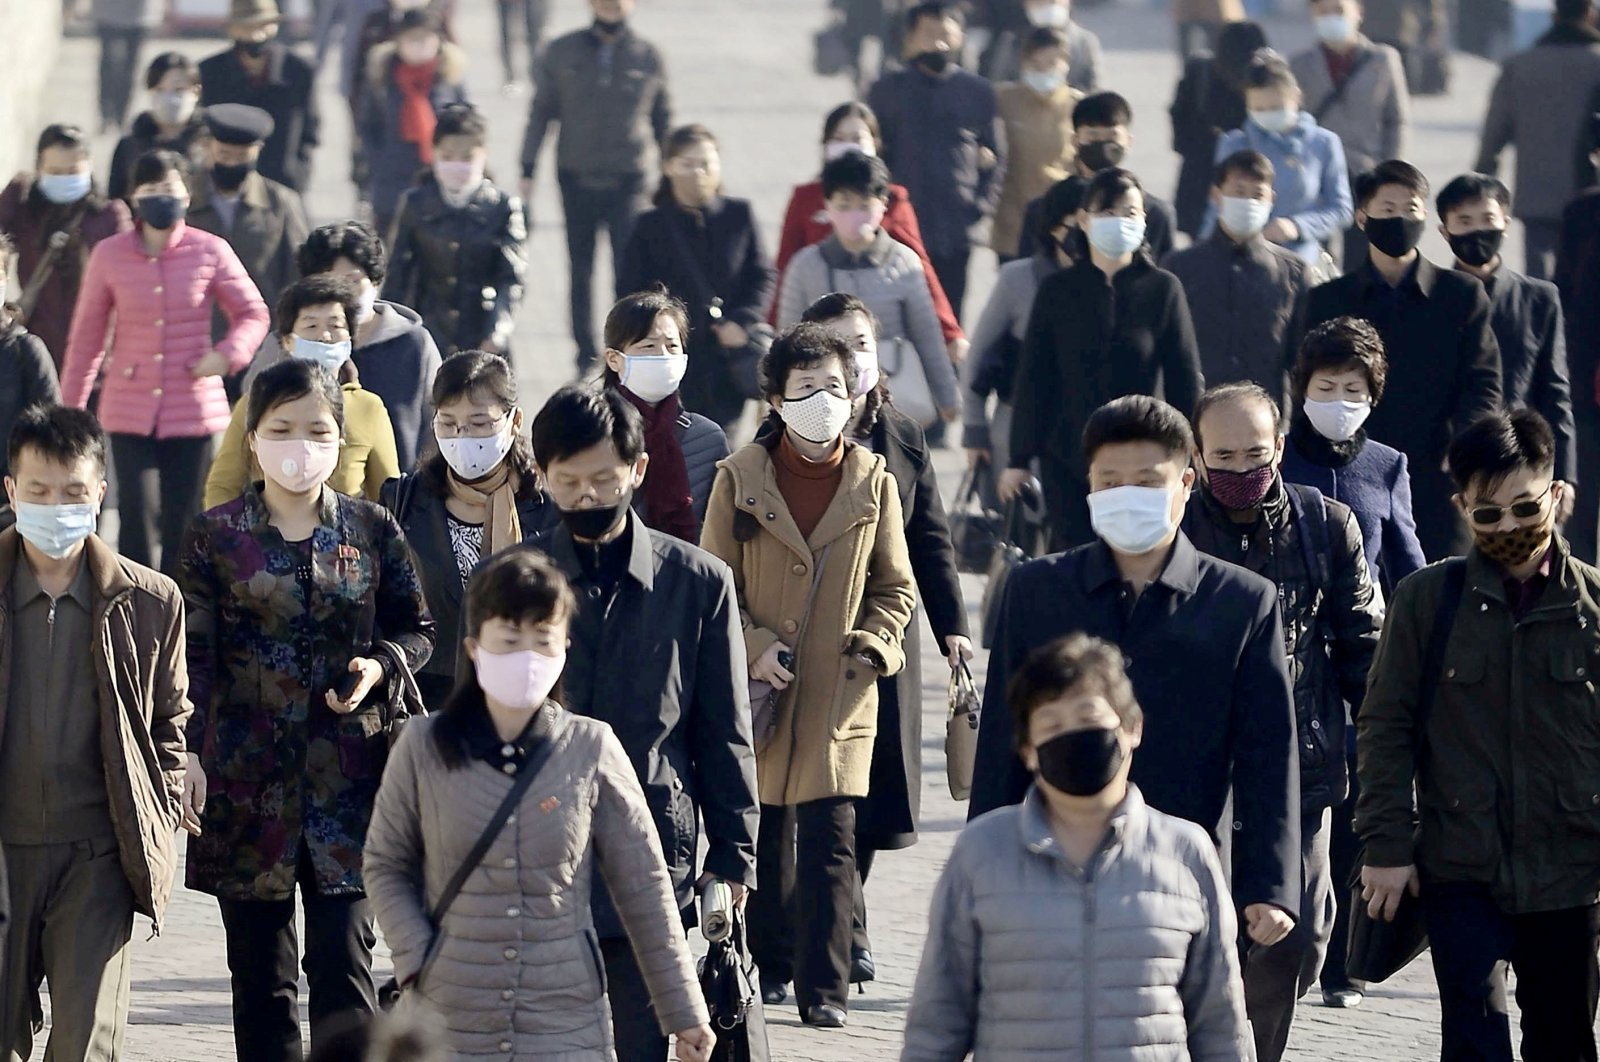 People wearing protective face masks commute amid concerns over COVID-19 in Pyongyang, North Korea, March 30, 2020. (Kyodo via Reuters)